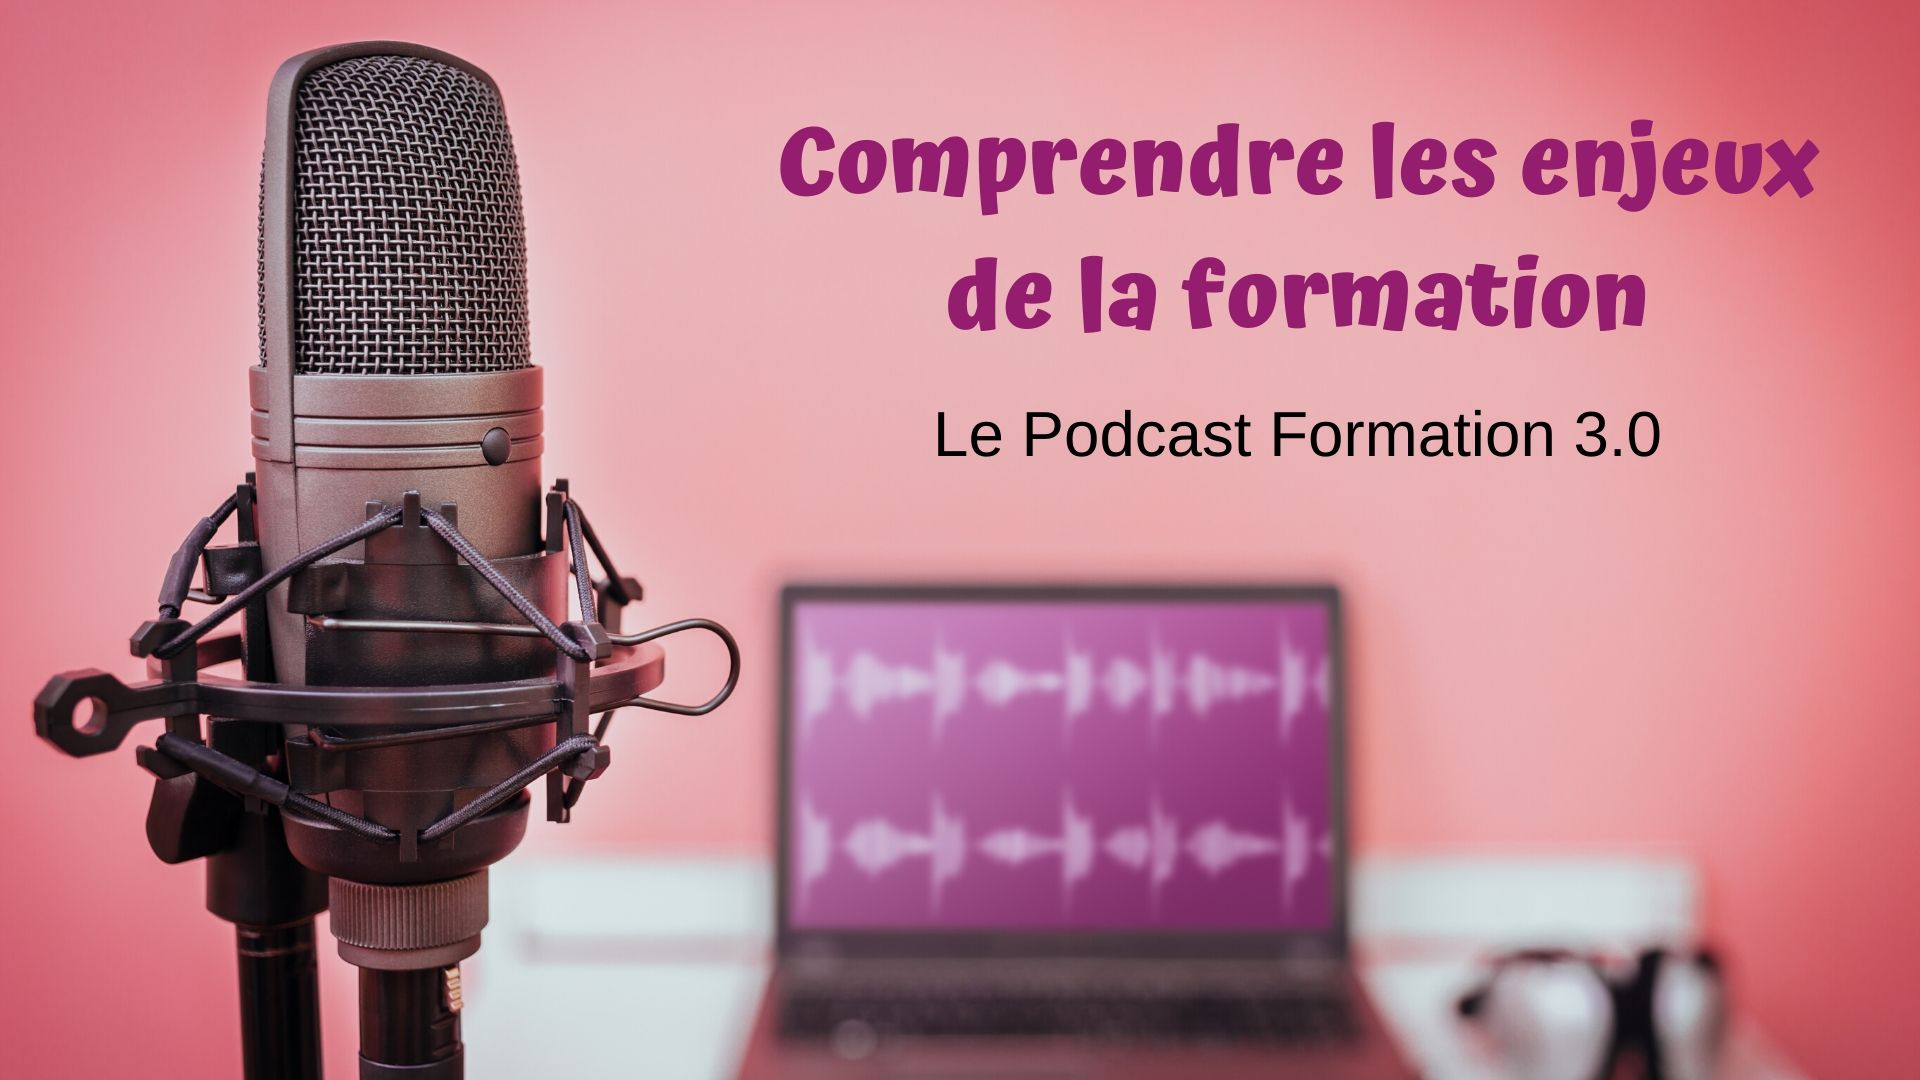 Le podcast de formation 3.0 : comprendre les enjeux de la formation digitale